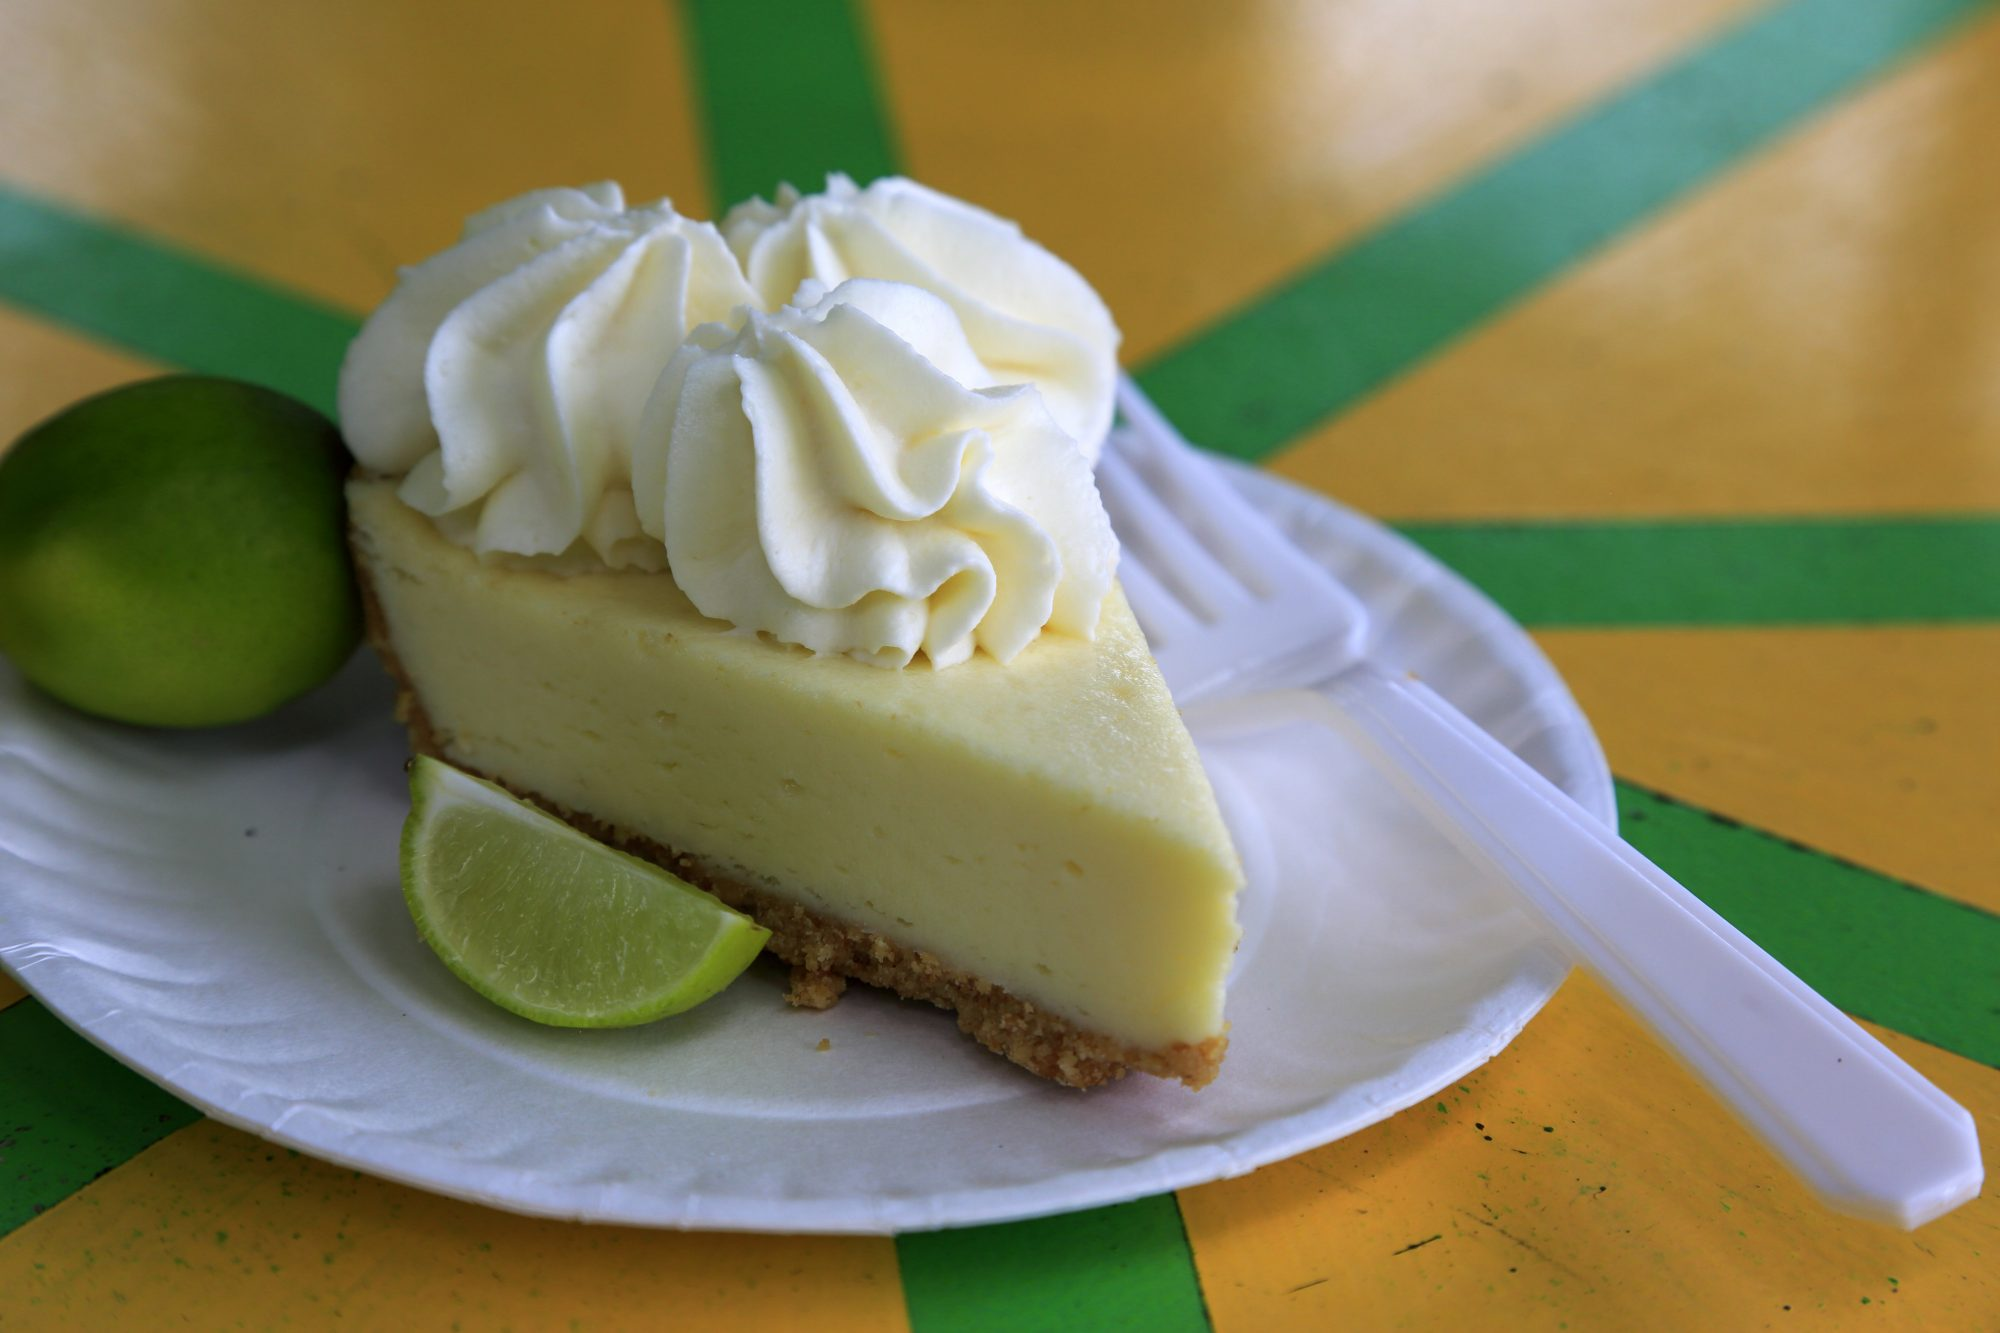 Satisfy your sweet tooth with a slice (or three) of delicious Key lime pie. Kermit's Key Lime Shoppe has been a Key West mainstay for decades and offers everything from Key lime pie and homemade taffy to Key lime mango chutney and citrus salsa.